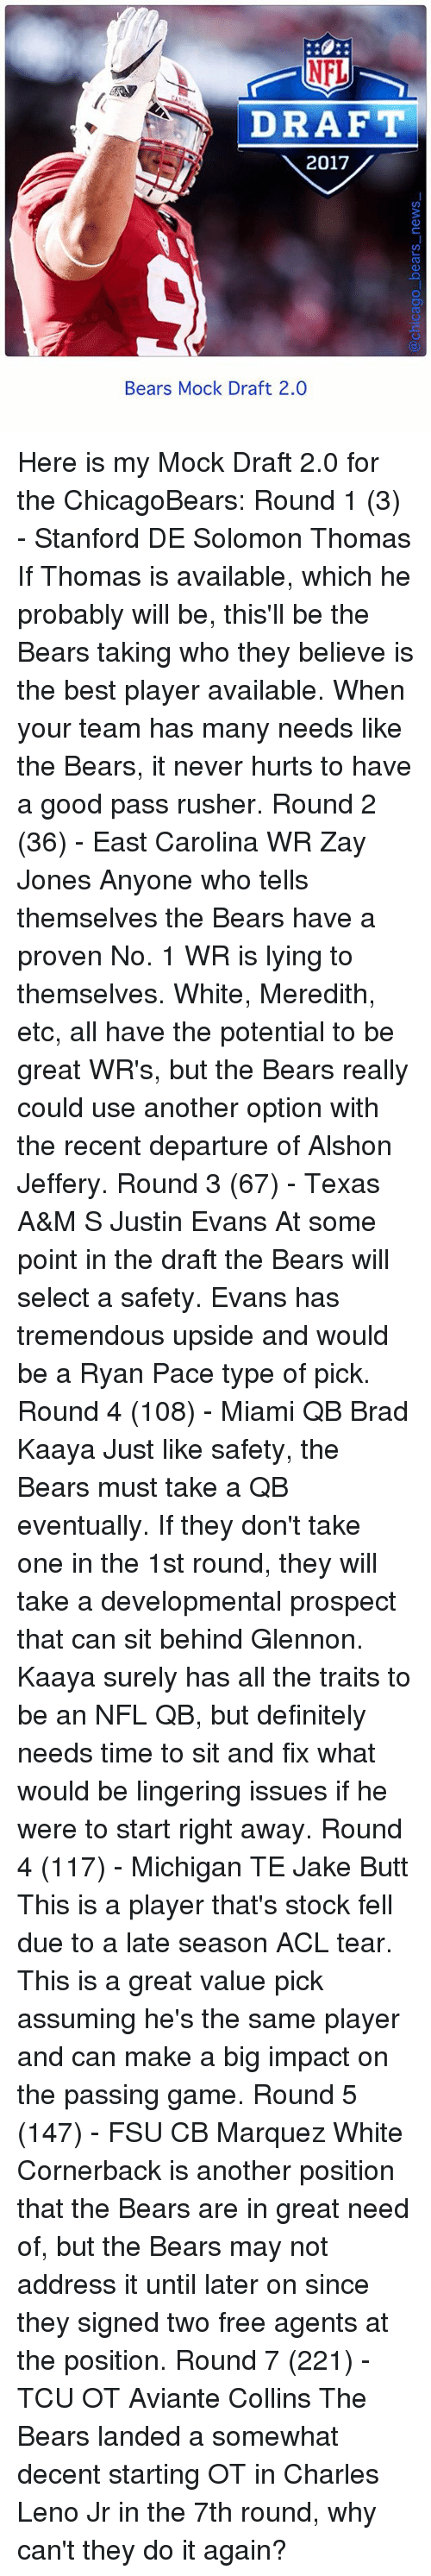 Butt, Definitely, and Do It Again: DRAFT  2017  Bears Mock Draft 2.0 Here is my Mock Draft 2.0 for the ChicagoBears: Round 1 (3) - Stanford DE Solomon Thomas If Thomas is available, which he probably will be, this'll be the Bears taking who they believe is the best player available. When your team has many needs like the Bears, it never hurts to have a good pass rusher. Round 2 (36) - East Carolina WR Zay Jones Anyone who tells themselves the Bears have a proven No. 1 WR is lying to themselves. White, Meredith, etc, all have the potential to be great WR's, but the Bears really could use another option with the recent departure of Alshon Jeffery. Round 3 (67) - Texas A&M S Justin Evans At some point in the draft the Bears will select a safety. Evans has tremendous upside and would be a Ryan Pace type of pick. Round 4 (108) - Miami QB Brad Kaaya Just like safety, the Bears must take a QB eventually. If they don't take one in the 1st round, they will take a developmental prospect that can sit behind Glennon. Kaaya surely has all the traits to be an NFL QB, but definitely needs time to sit and fix what would be lingering issues if he were to start right away. Round 4 (117) - Michigan TE Jake Butt This is a player that's stock fell due to a late season ACL tear. This is a great value pick assuming he's the same player and can make a big impact on the passing game. Round 5 (147) - FSU CB Marquez White Cornerback is another position that the Bears are in great need of, but the Bears may not address it until later on since they signed two free agents at the position. Round 7 (221) - TCU OT Aviante Collins The Bears landed a somewhat decent starting OT in Charles Leno Jr in the 7th round, why can't they do it again?